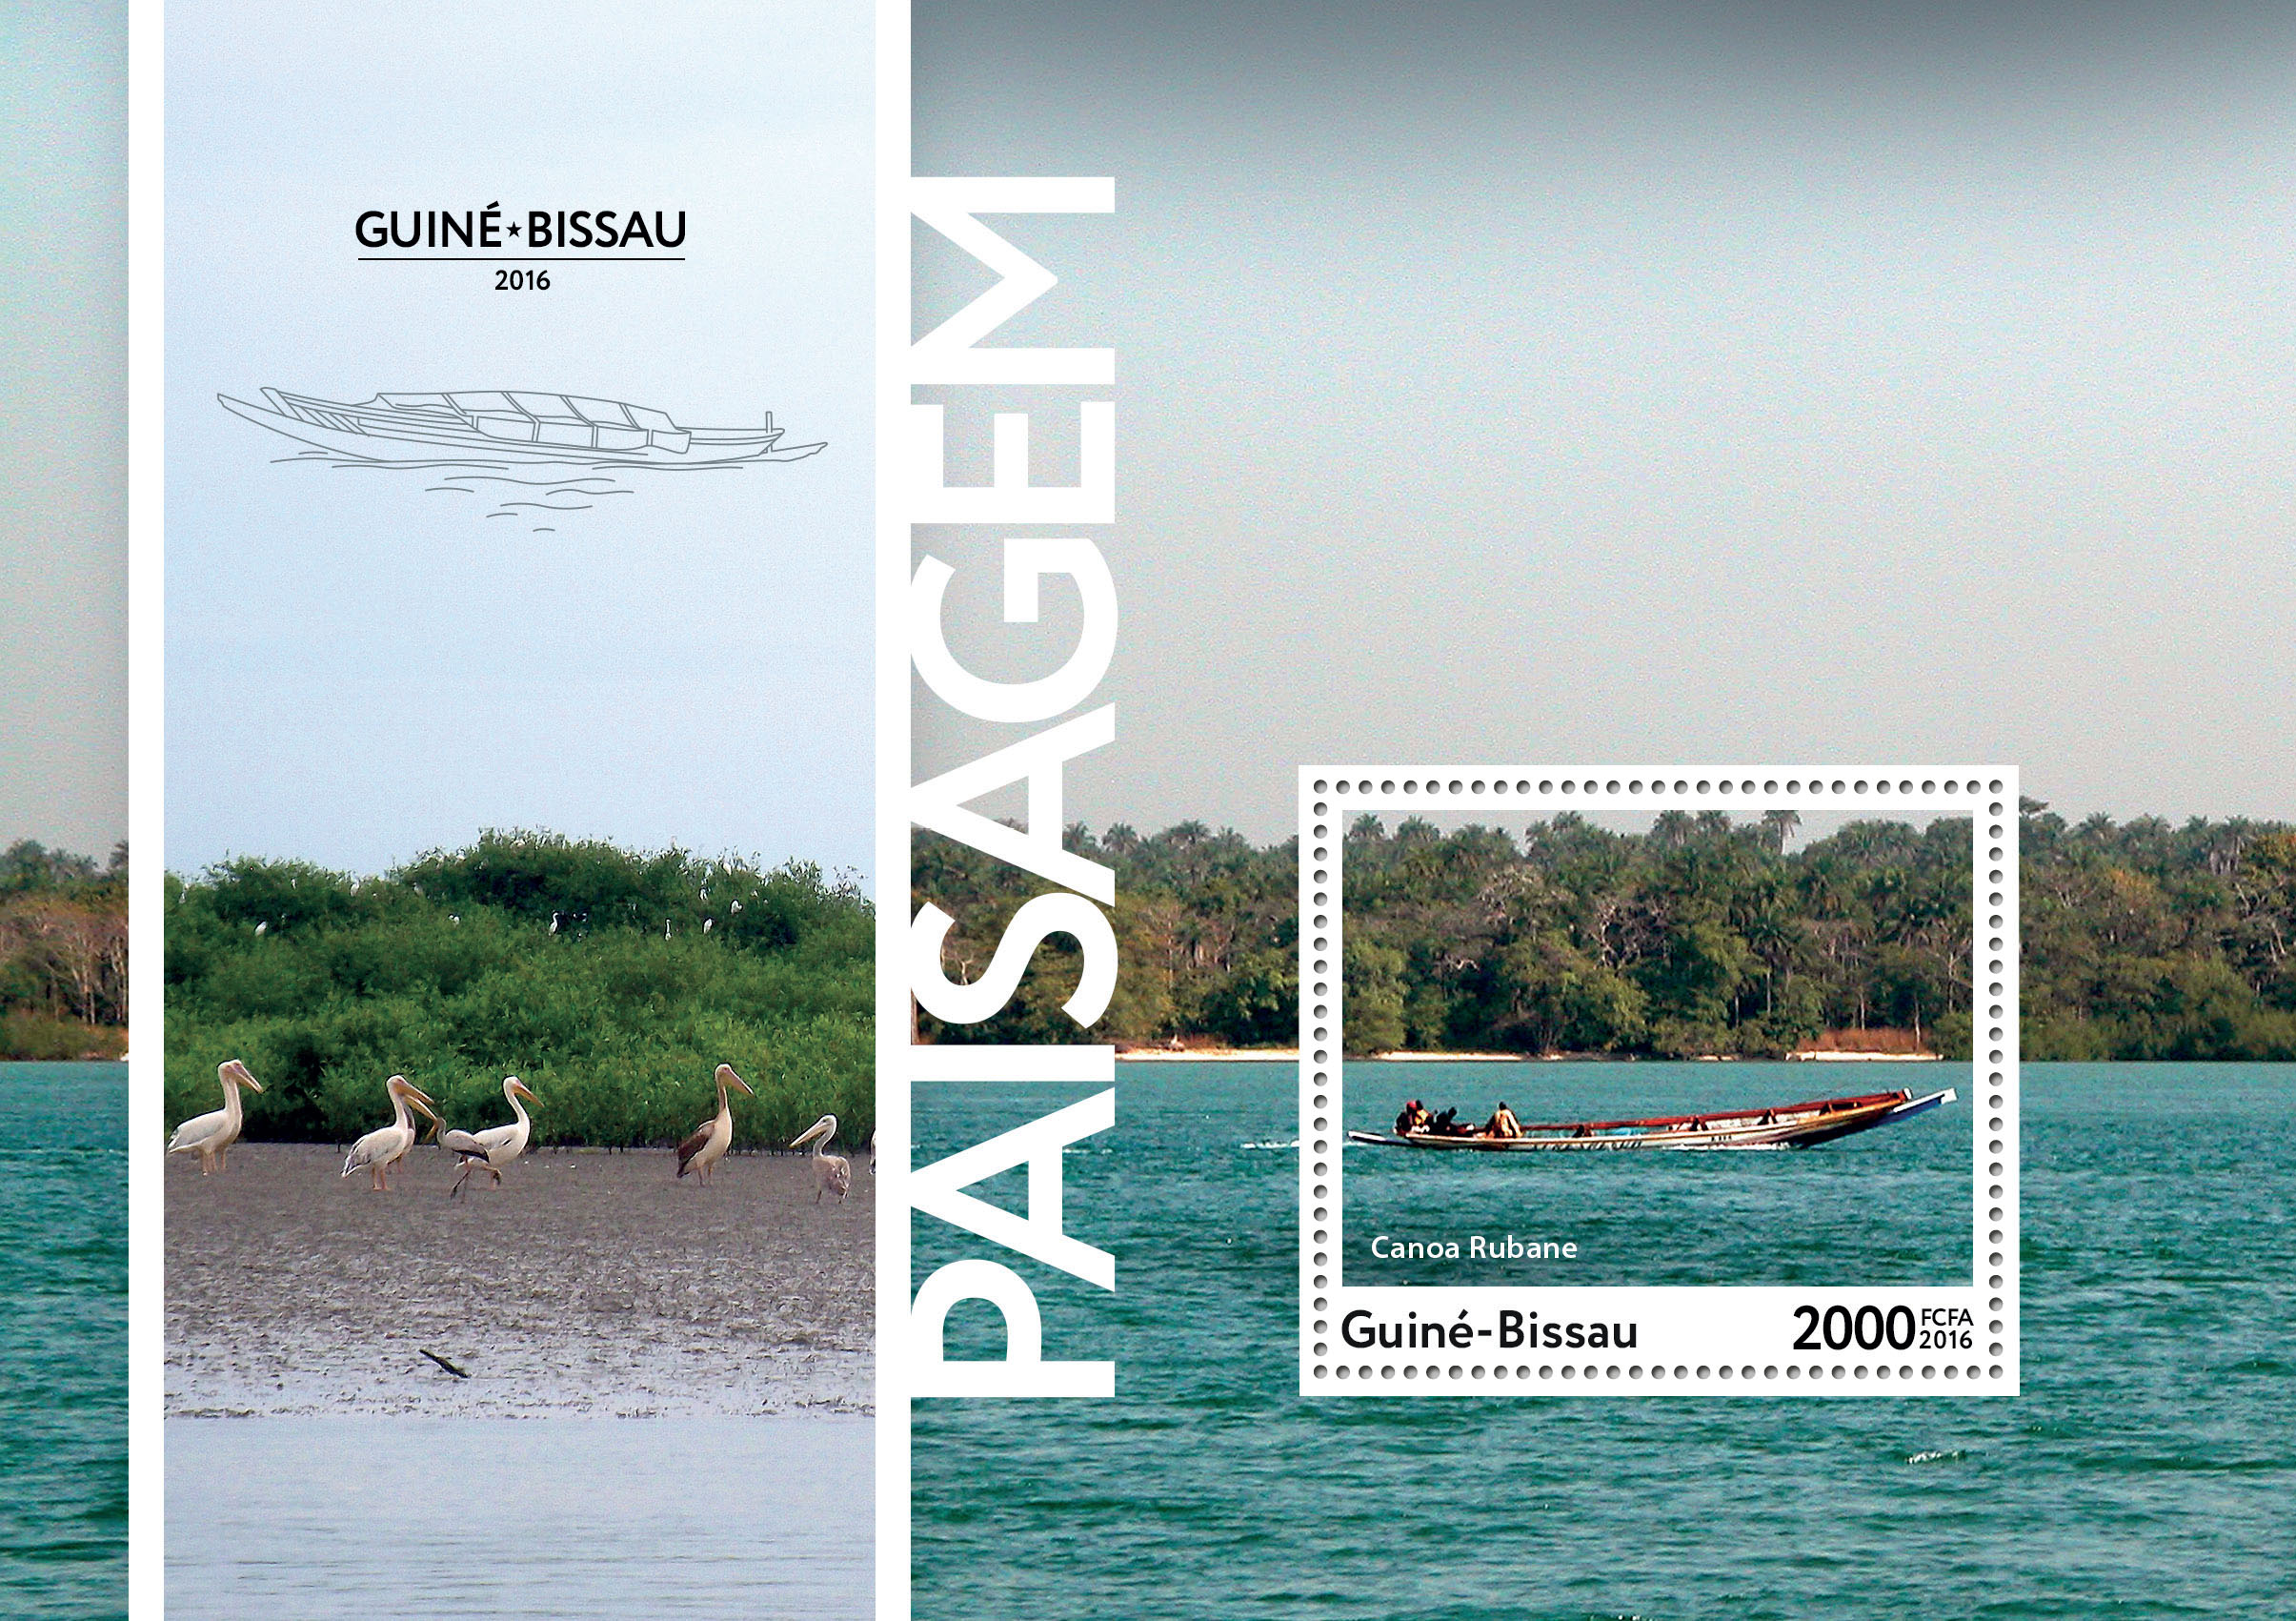 Landscapes s/s - Issue of Guinée-Bissau postage stamps